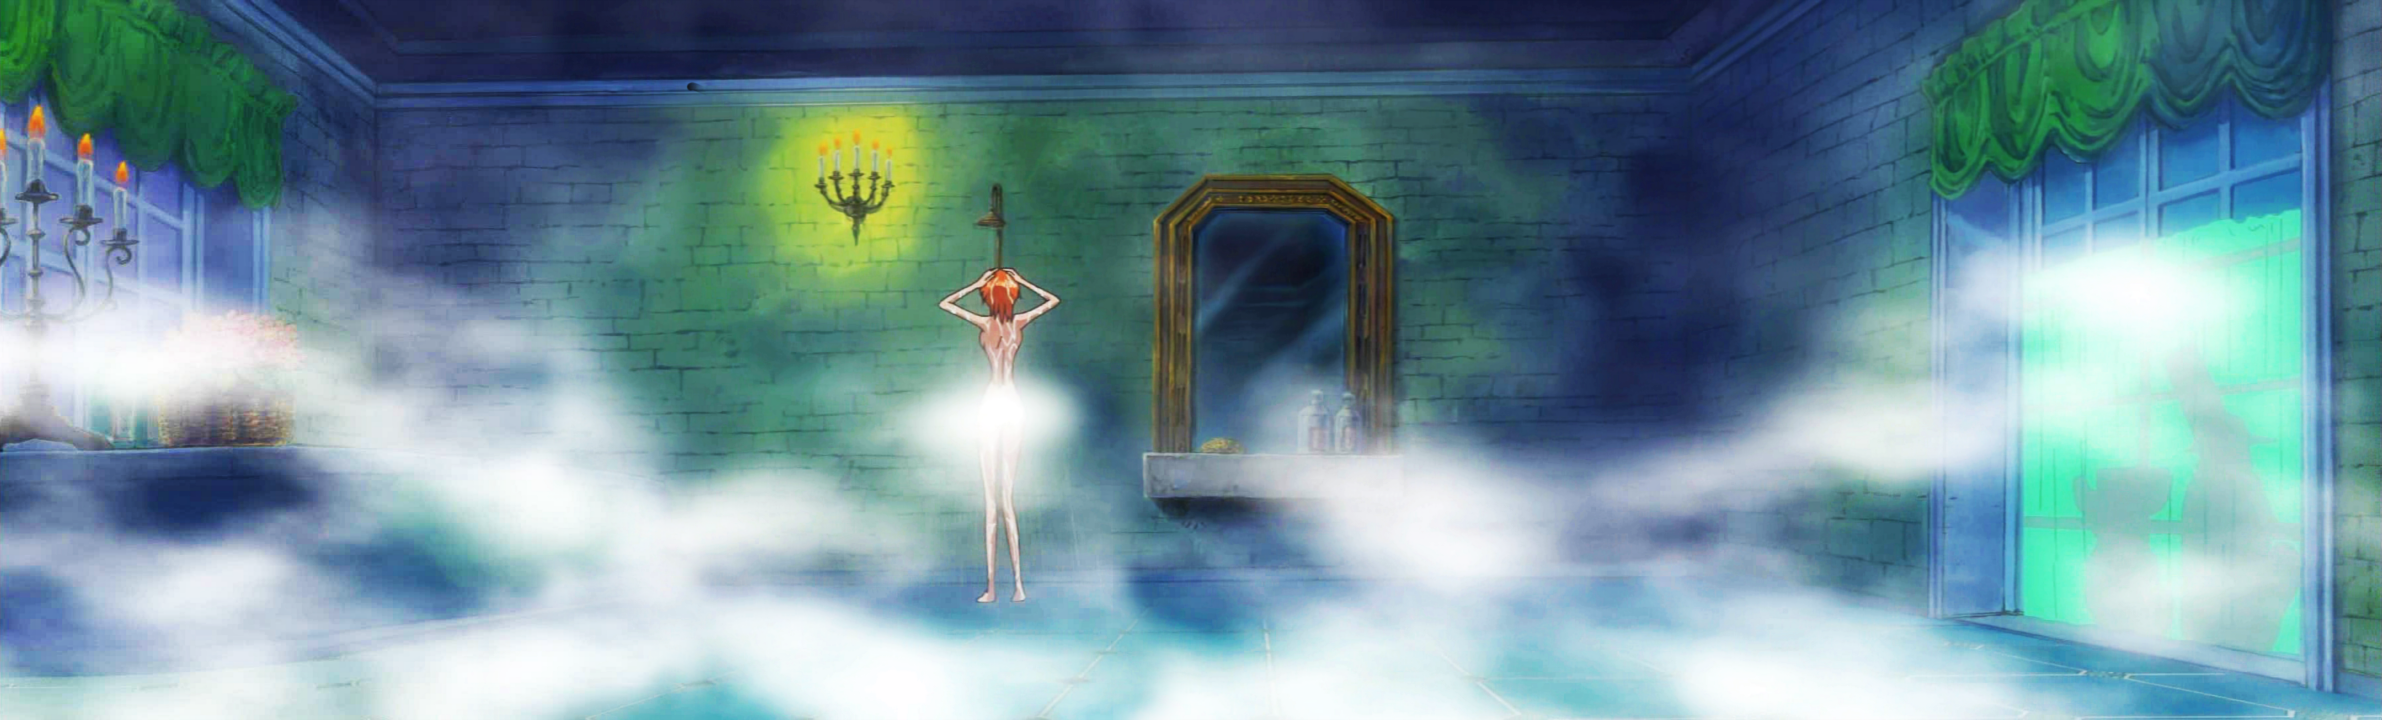 File:One Piece 341 4.png - Anime Bath Scene Wiki